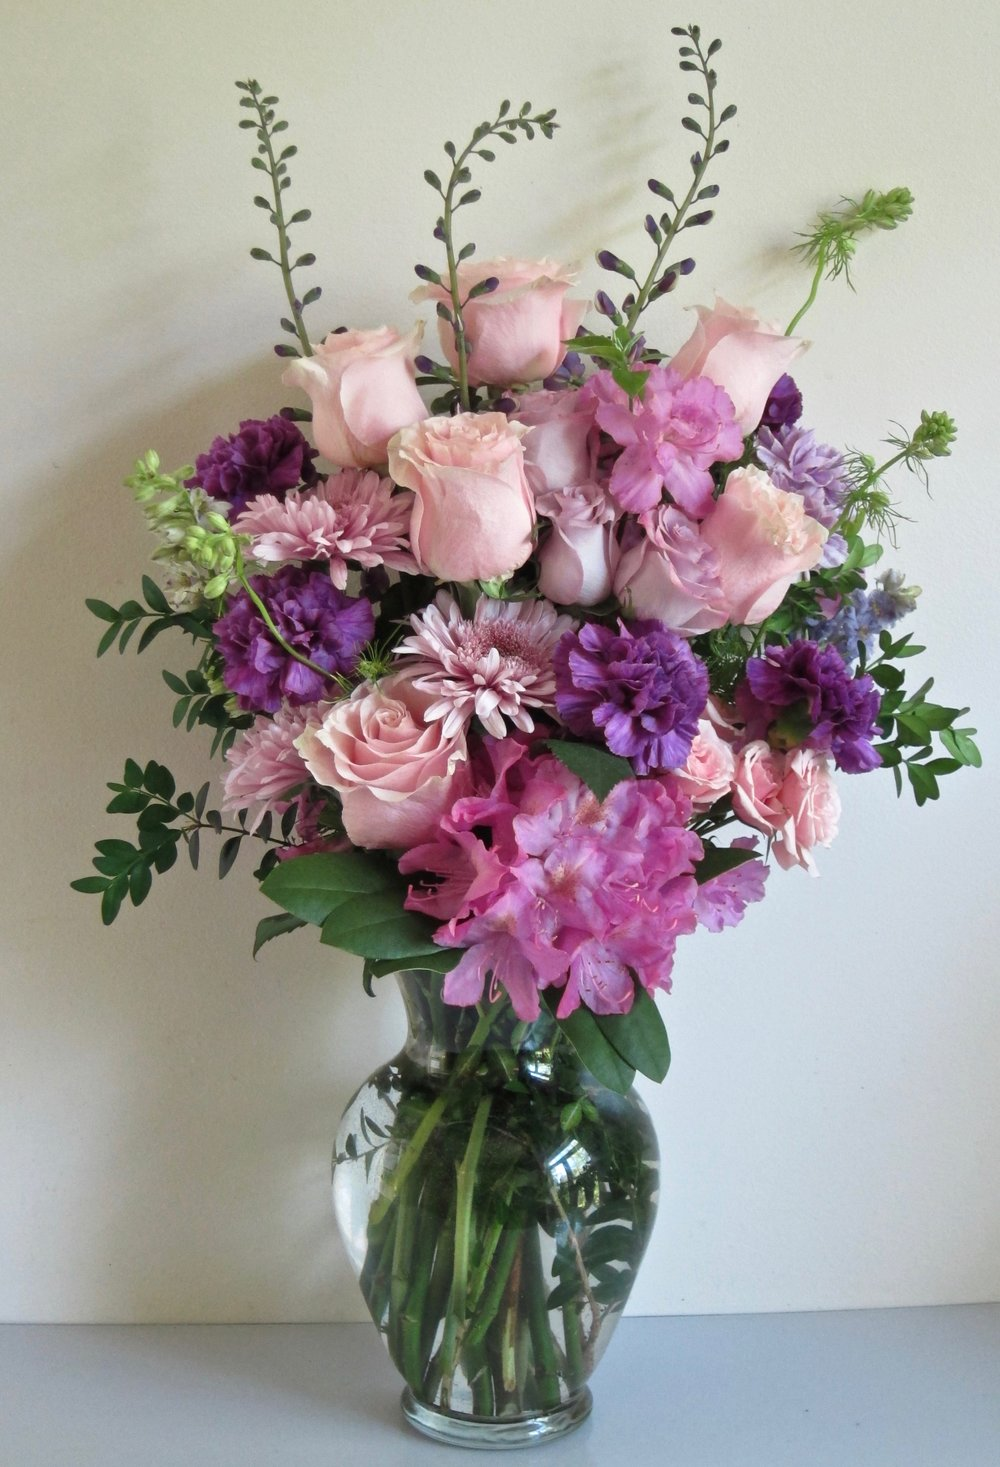 LARGE VASE BOUQUET    Pinks and purples with line flowers such as delplhinium or larkspur, $65.